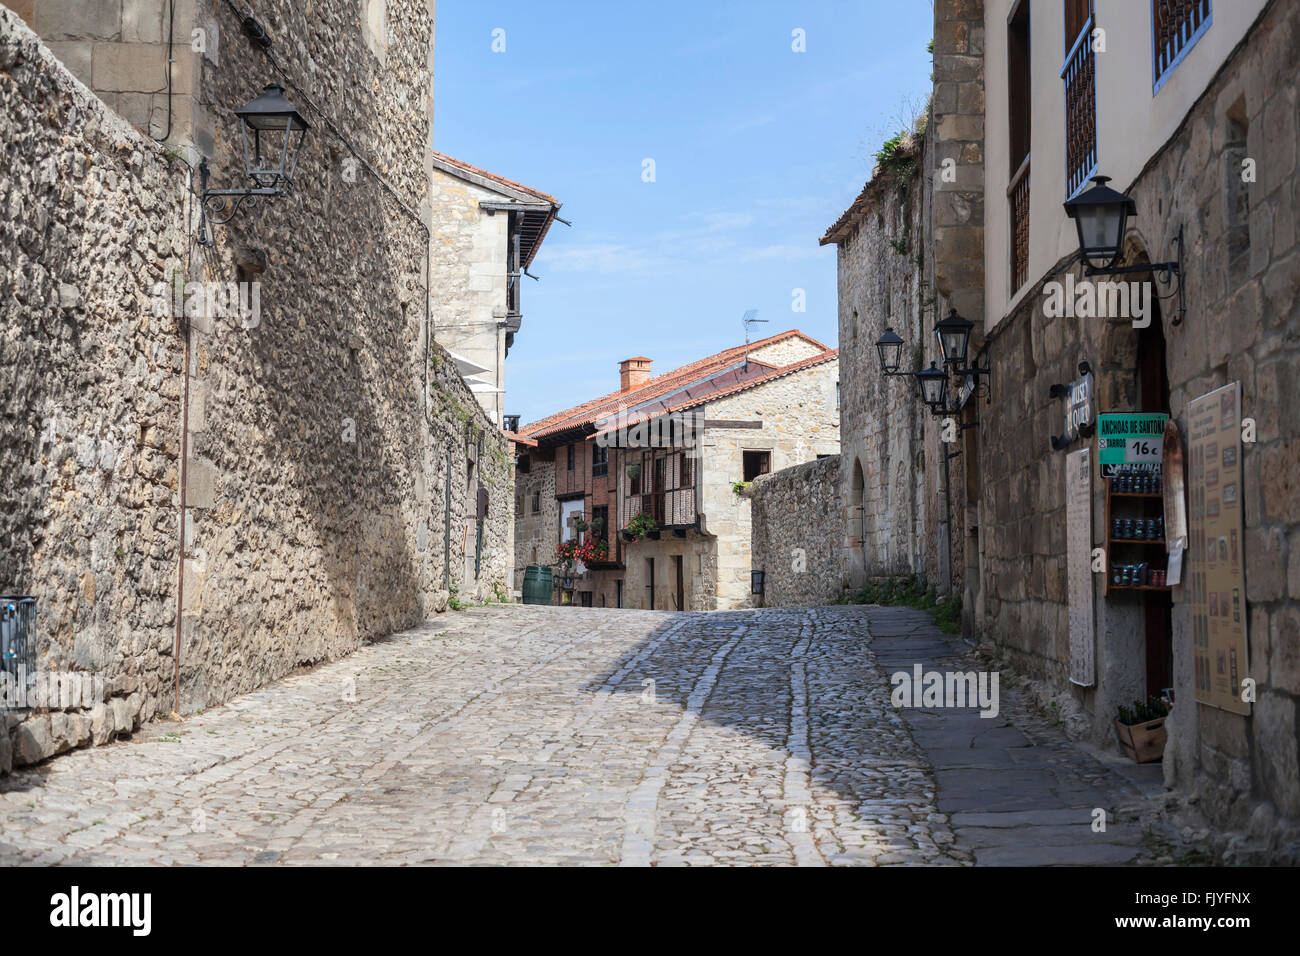 Santillana del Mar,Cantabria,Spain. - Stock Image